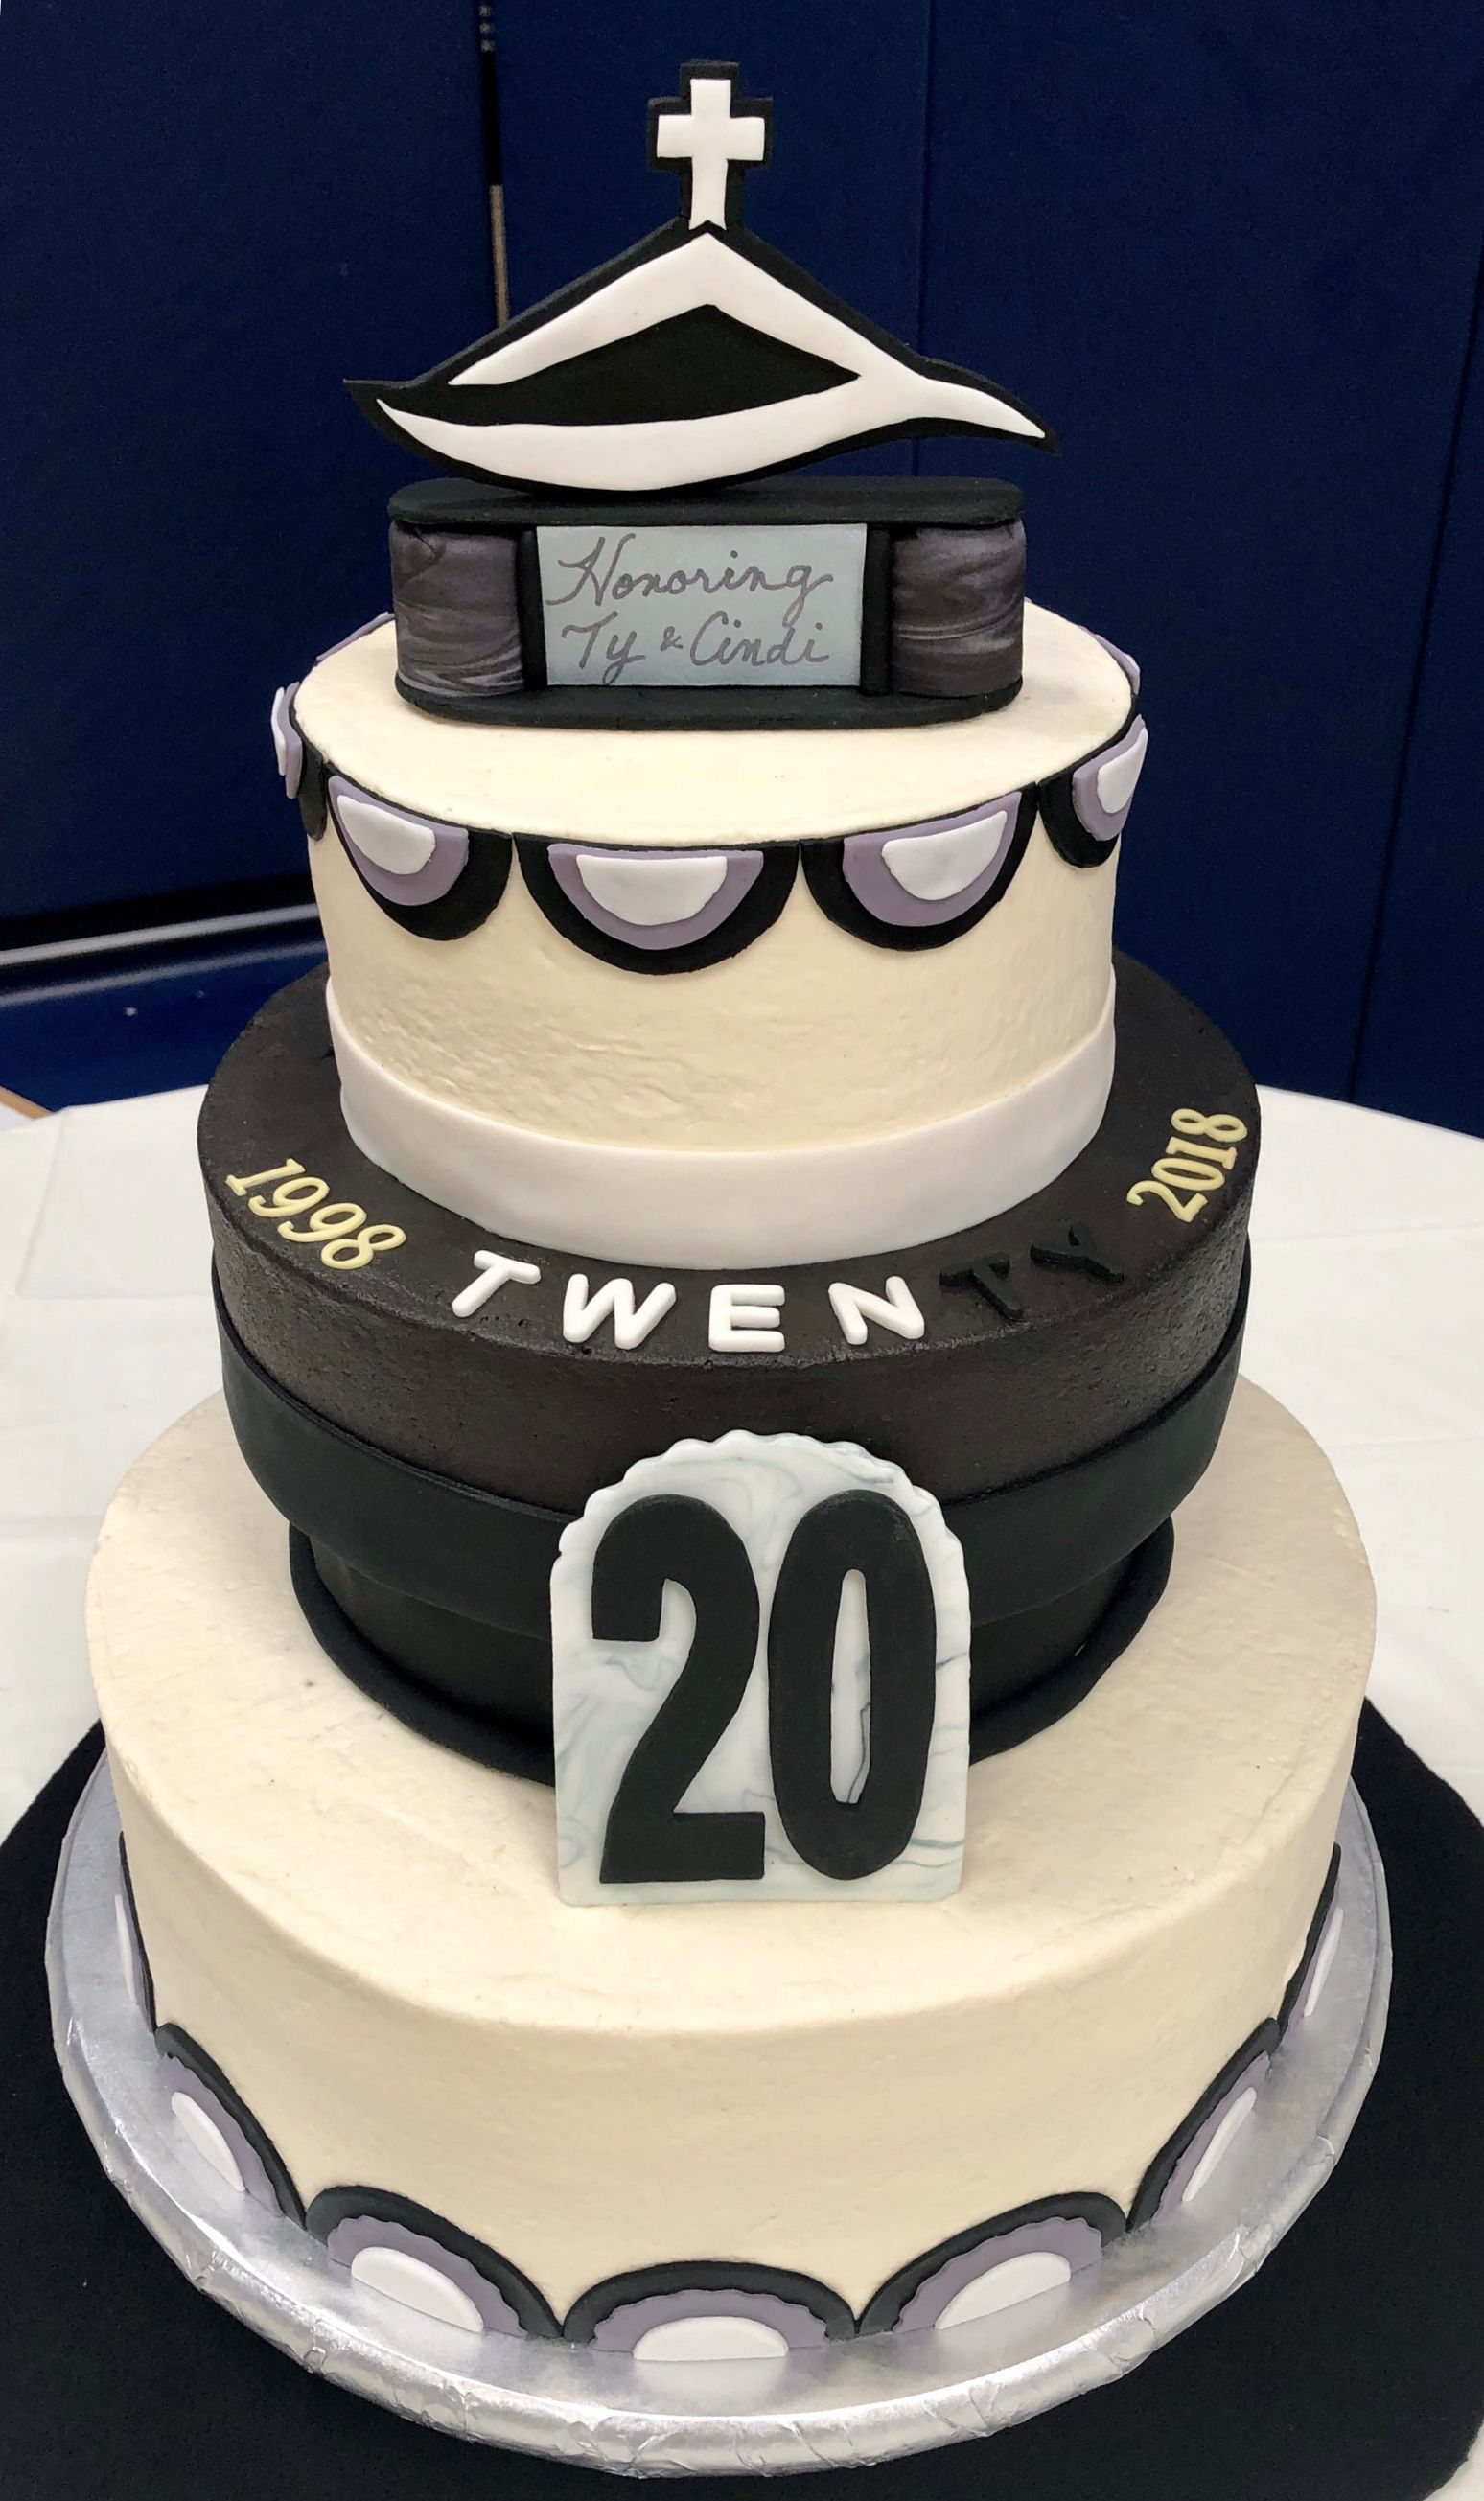 20th Anniversary Celebration Cake For Pastor Ty And Cindi South